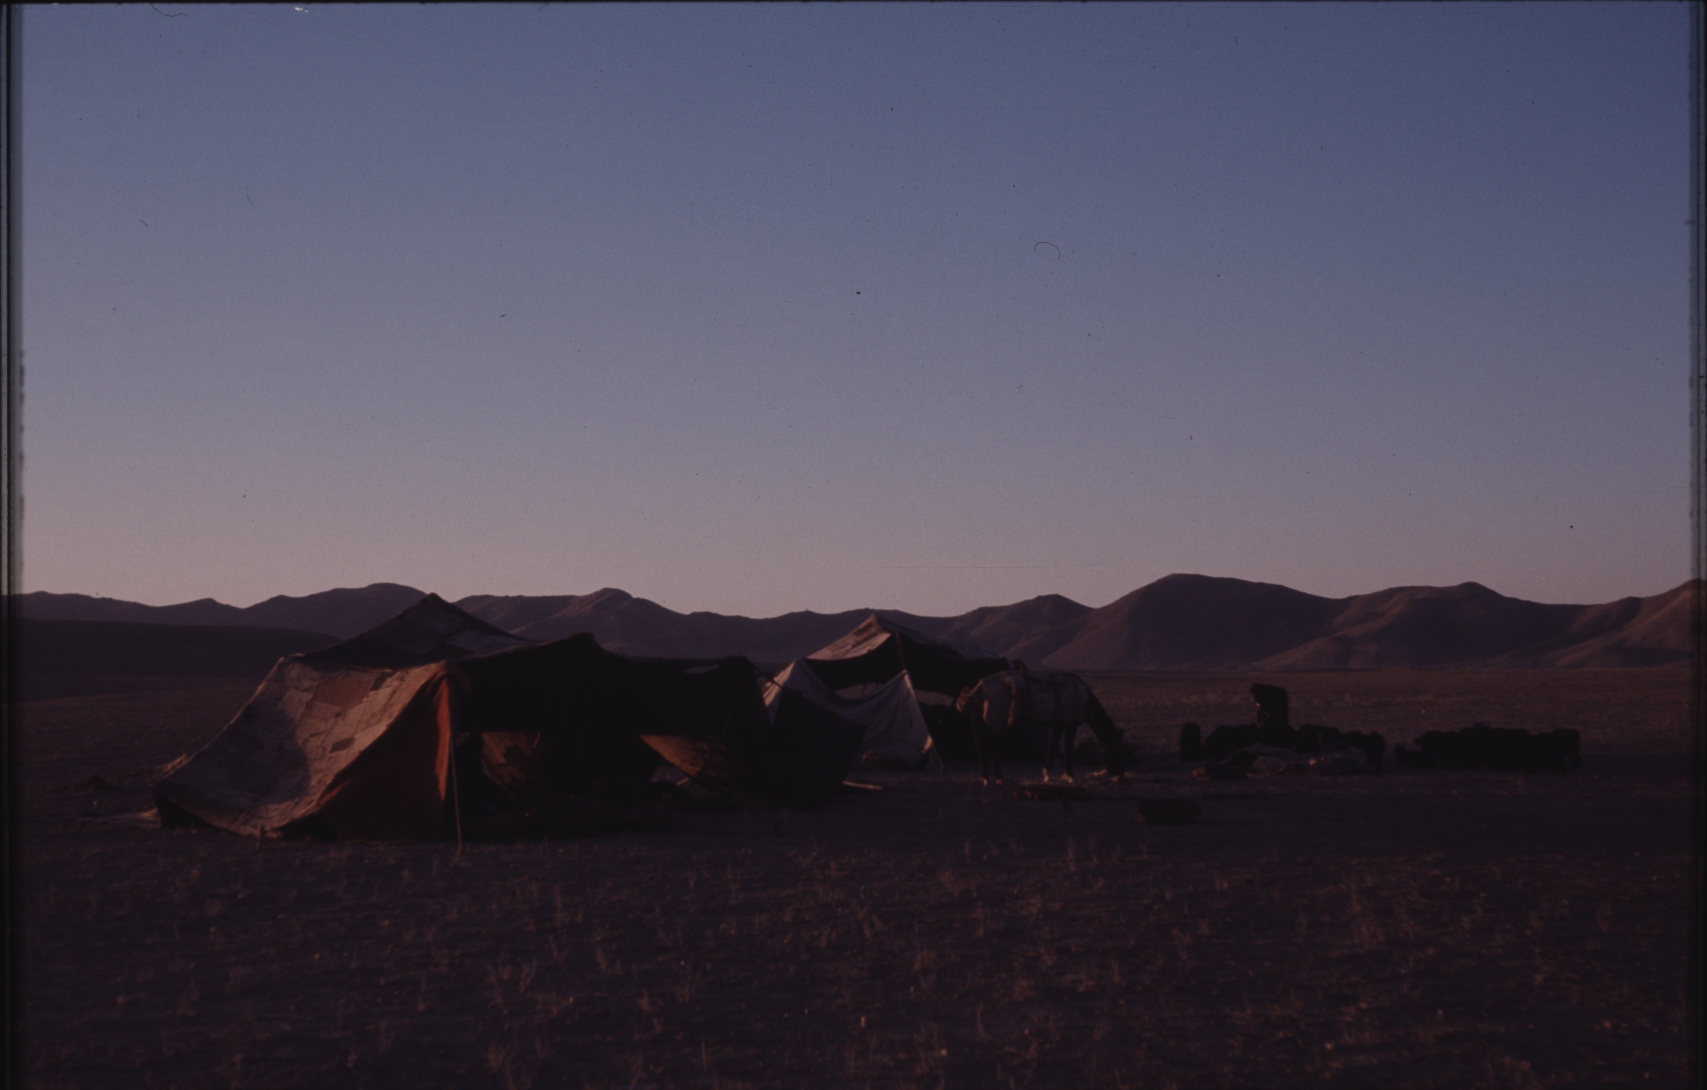 Darkness falls over the camp. There are several watchdogs in the camp to keep away the wolves. Photo: Jean Bourgeois, 1971